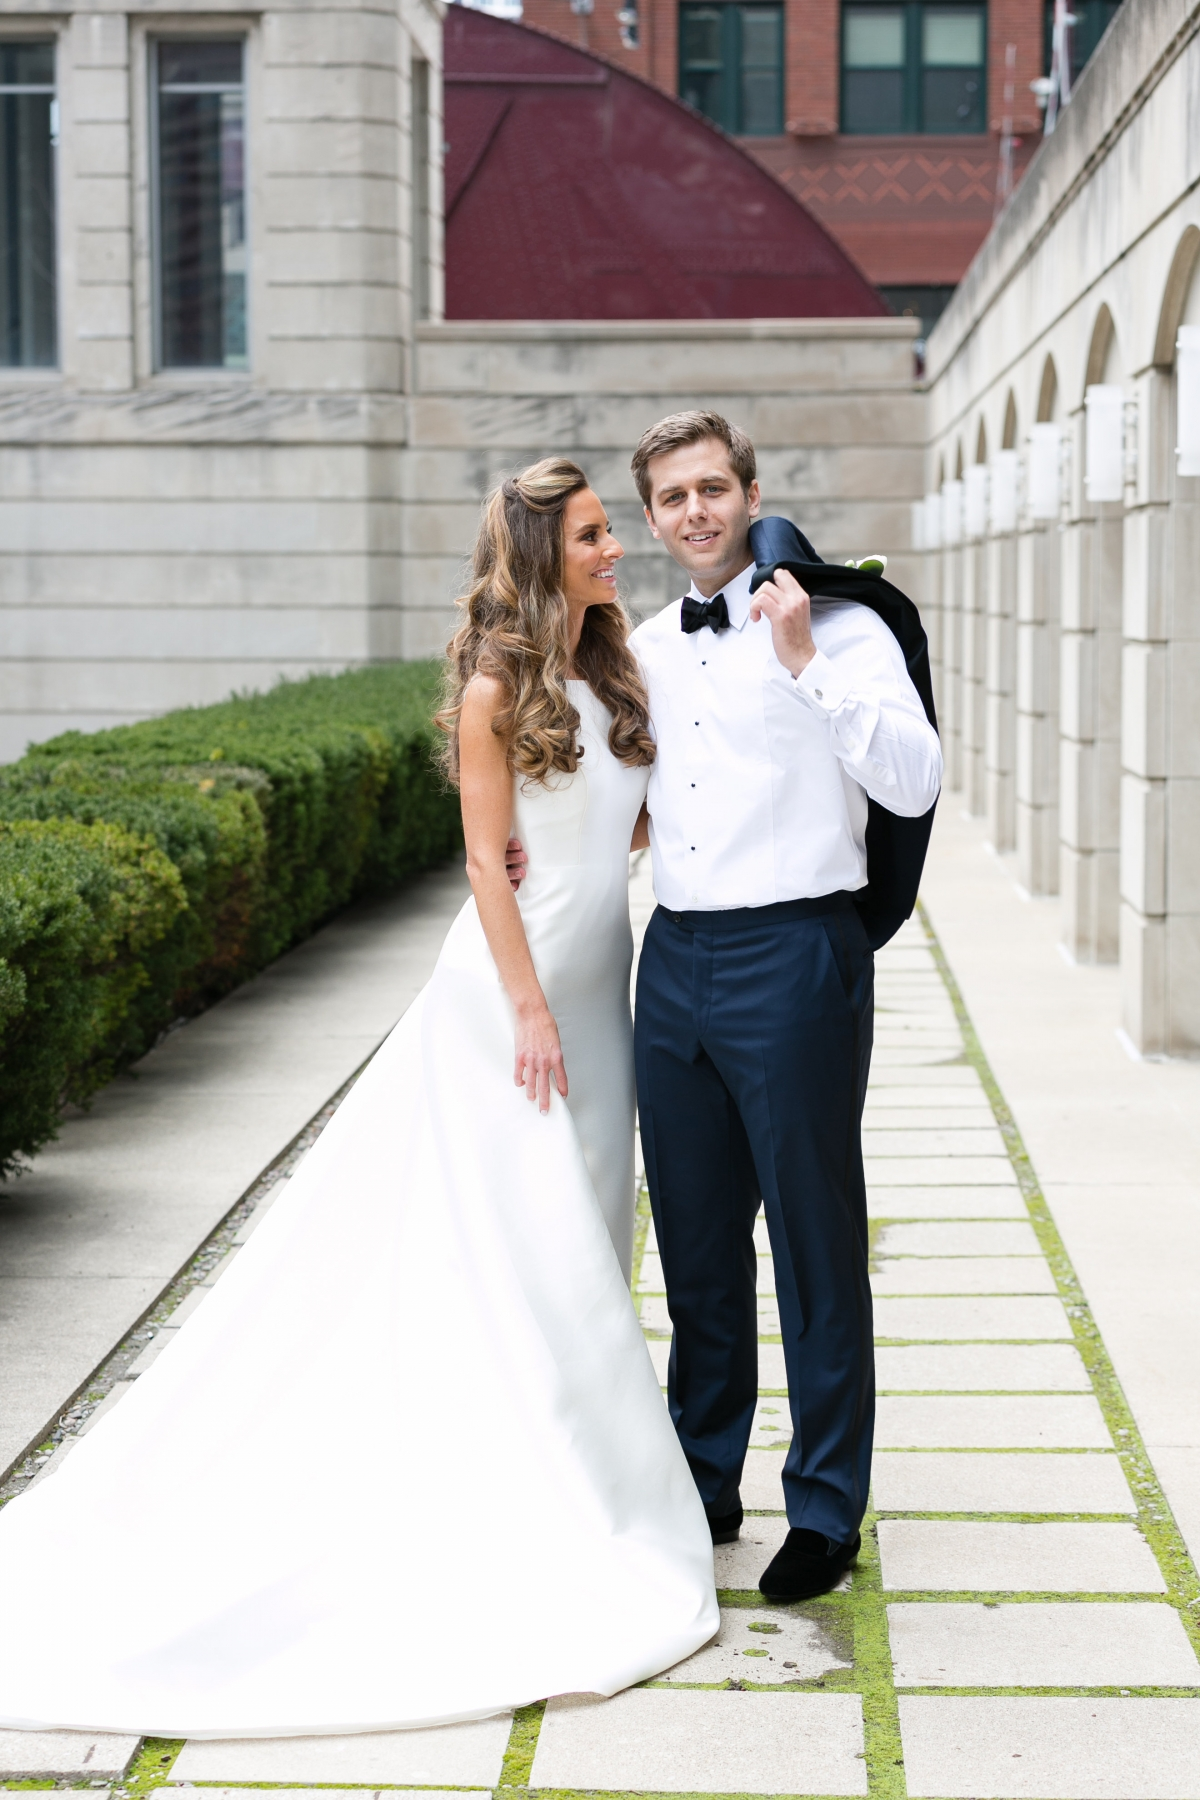 Elegant Chicago Wedding at the Murphy Emilia Jane 9